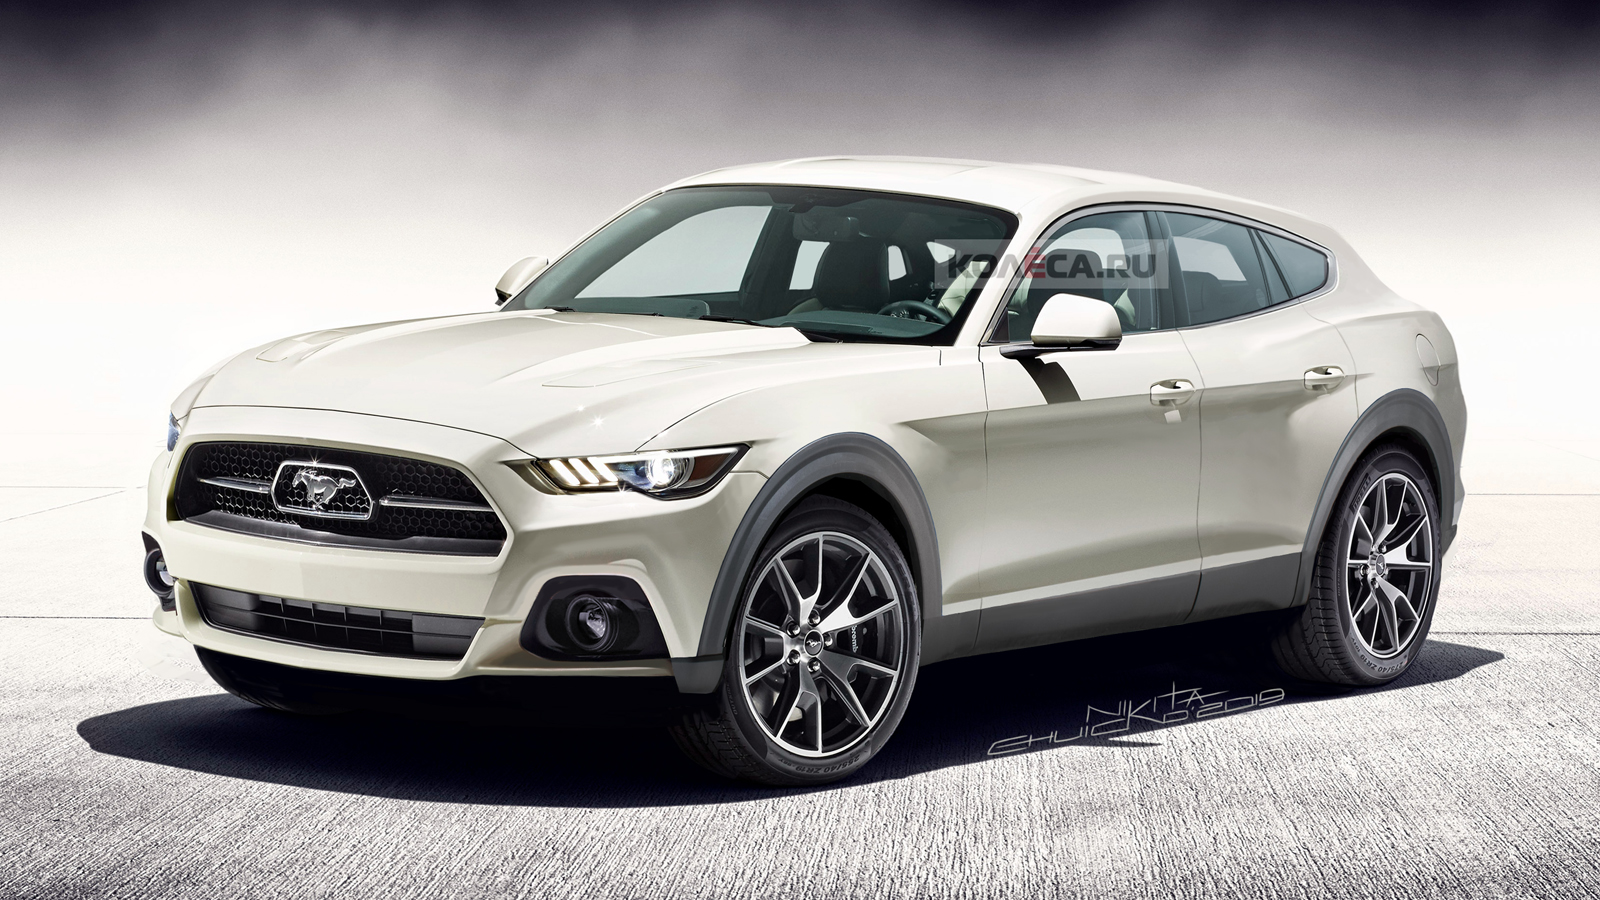 6afed5fb-ford-mustang-crossover-render-1